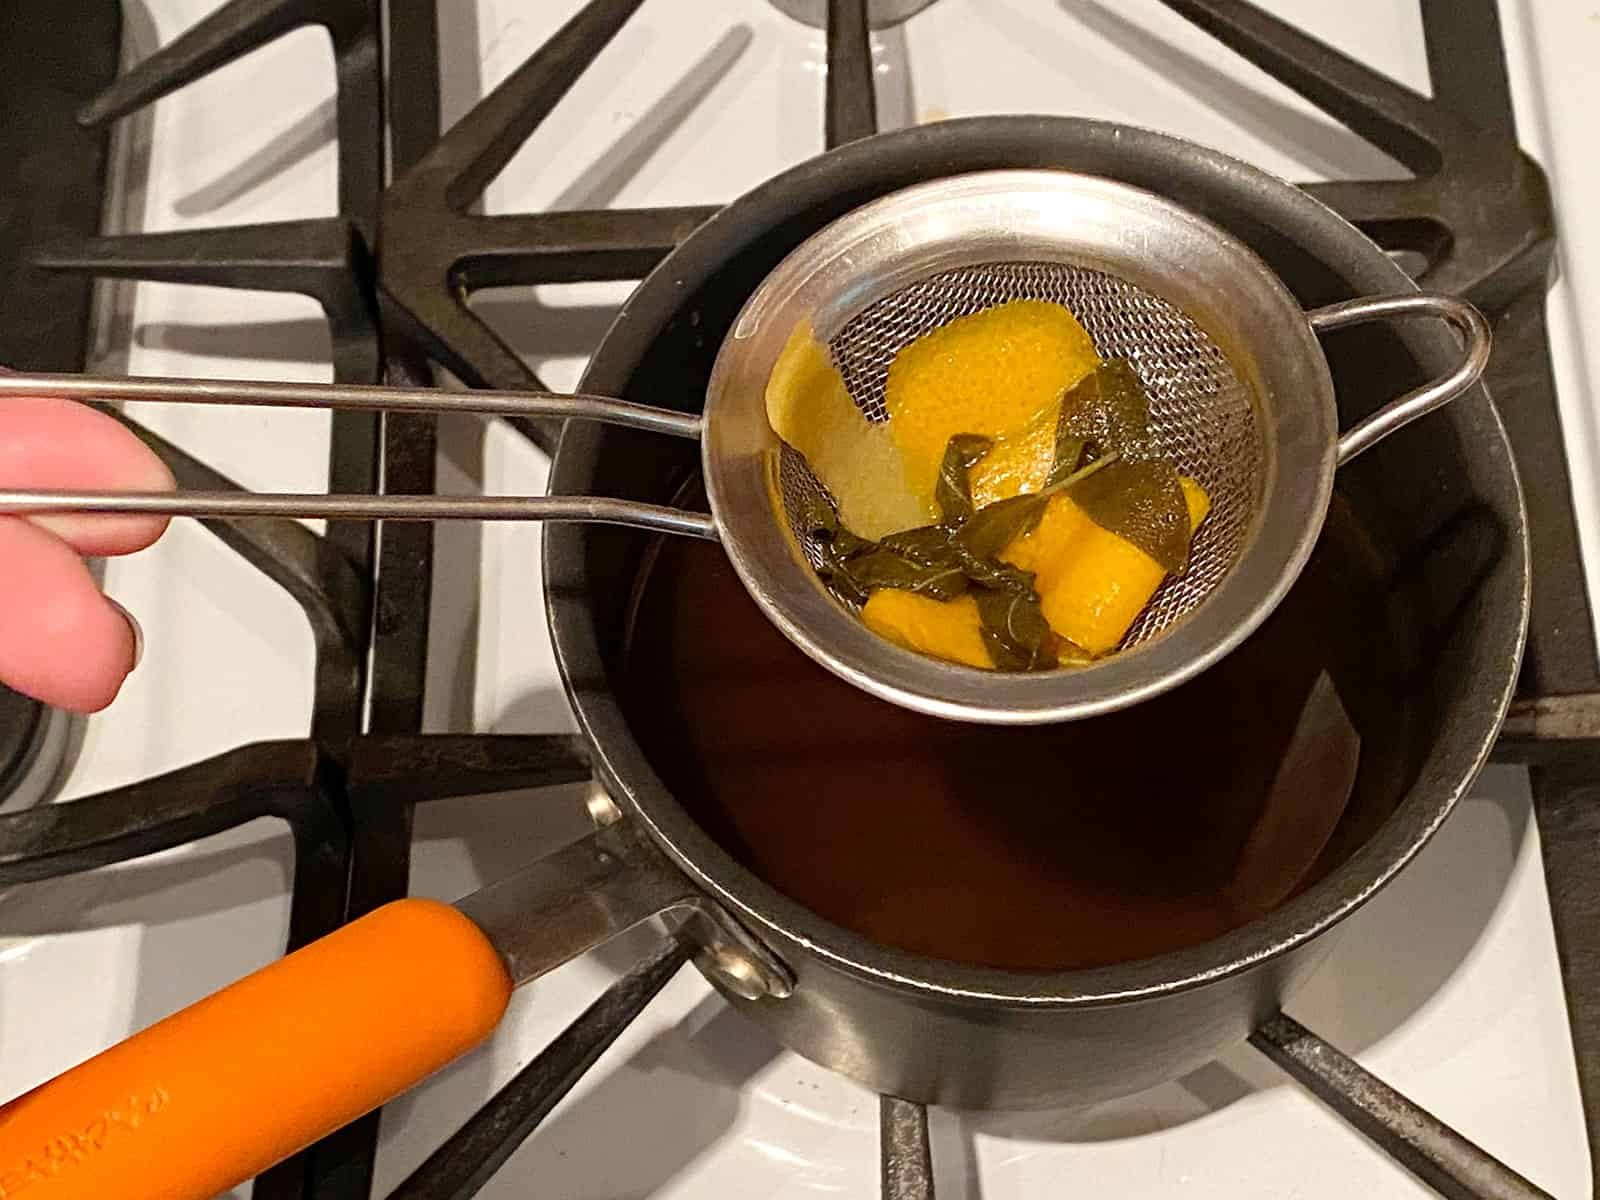 Straining sage leaves and citrus peel from apple cider syrup